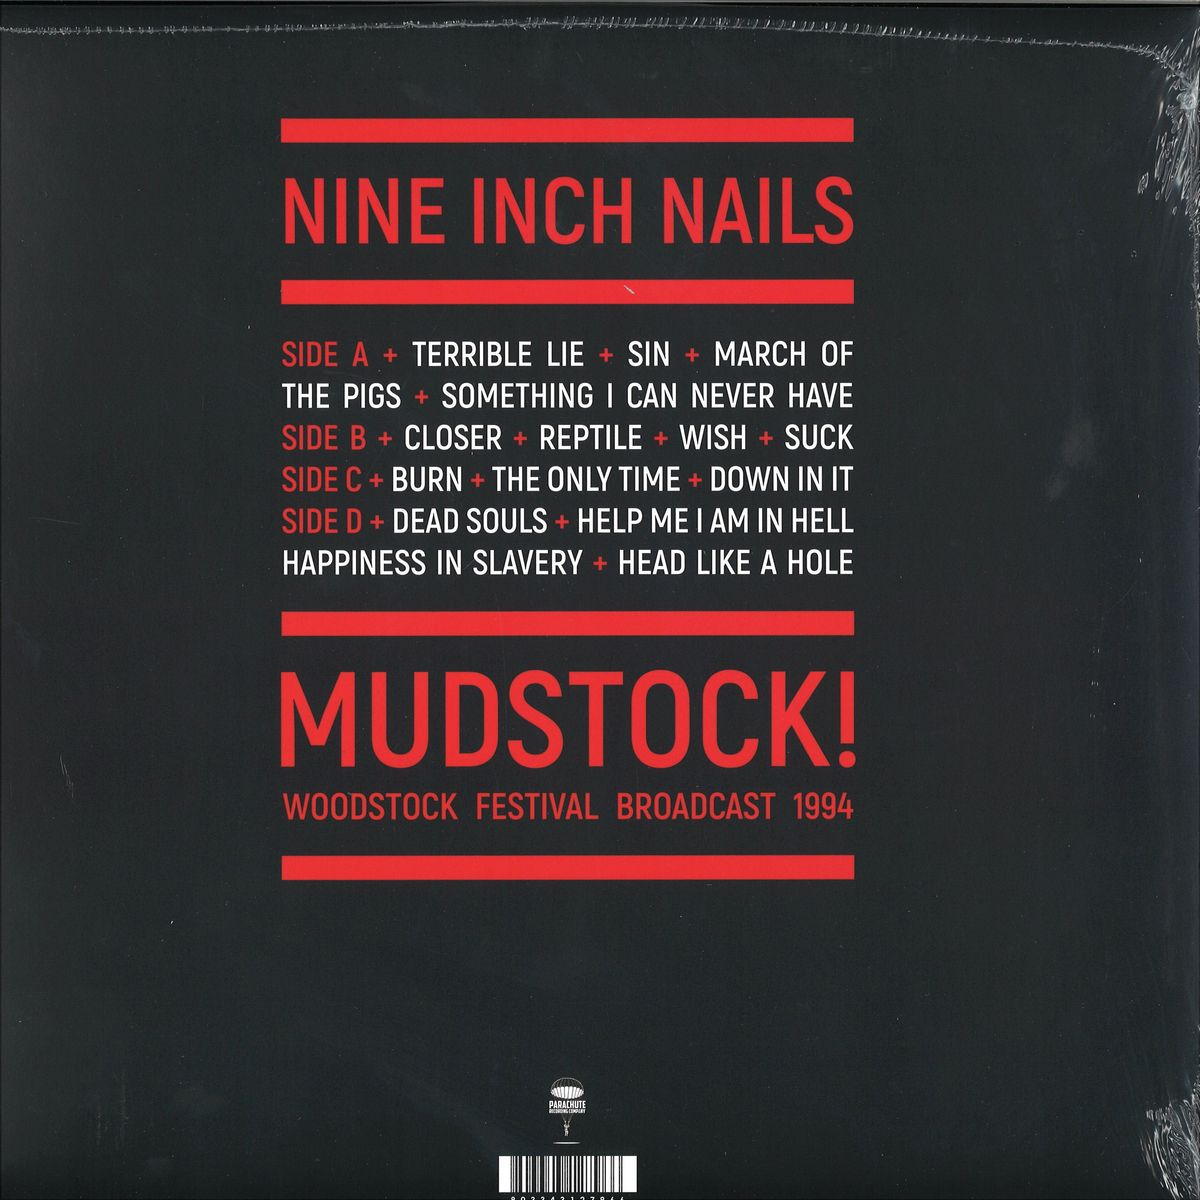 Nine Inch Nails - Mudstock! (woodstock 1994) / Parachute PARA124LP ...